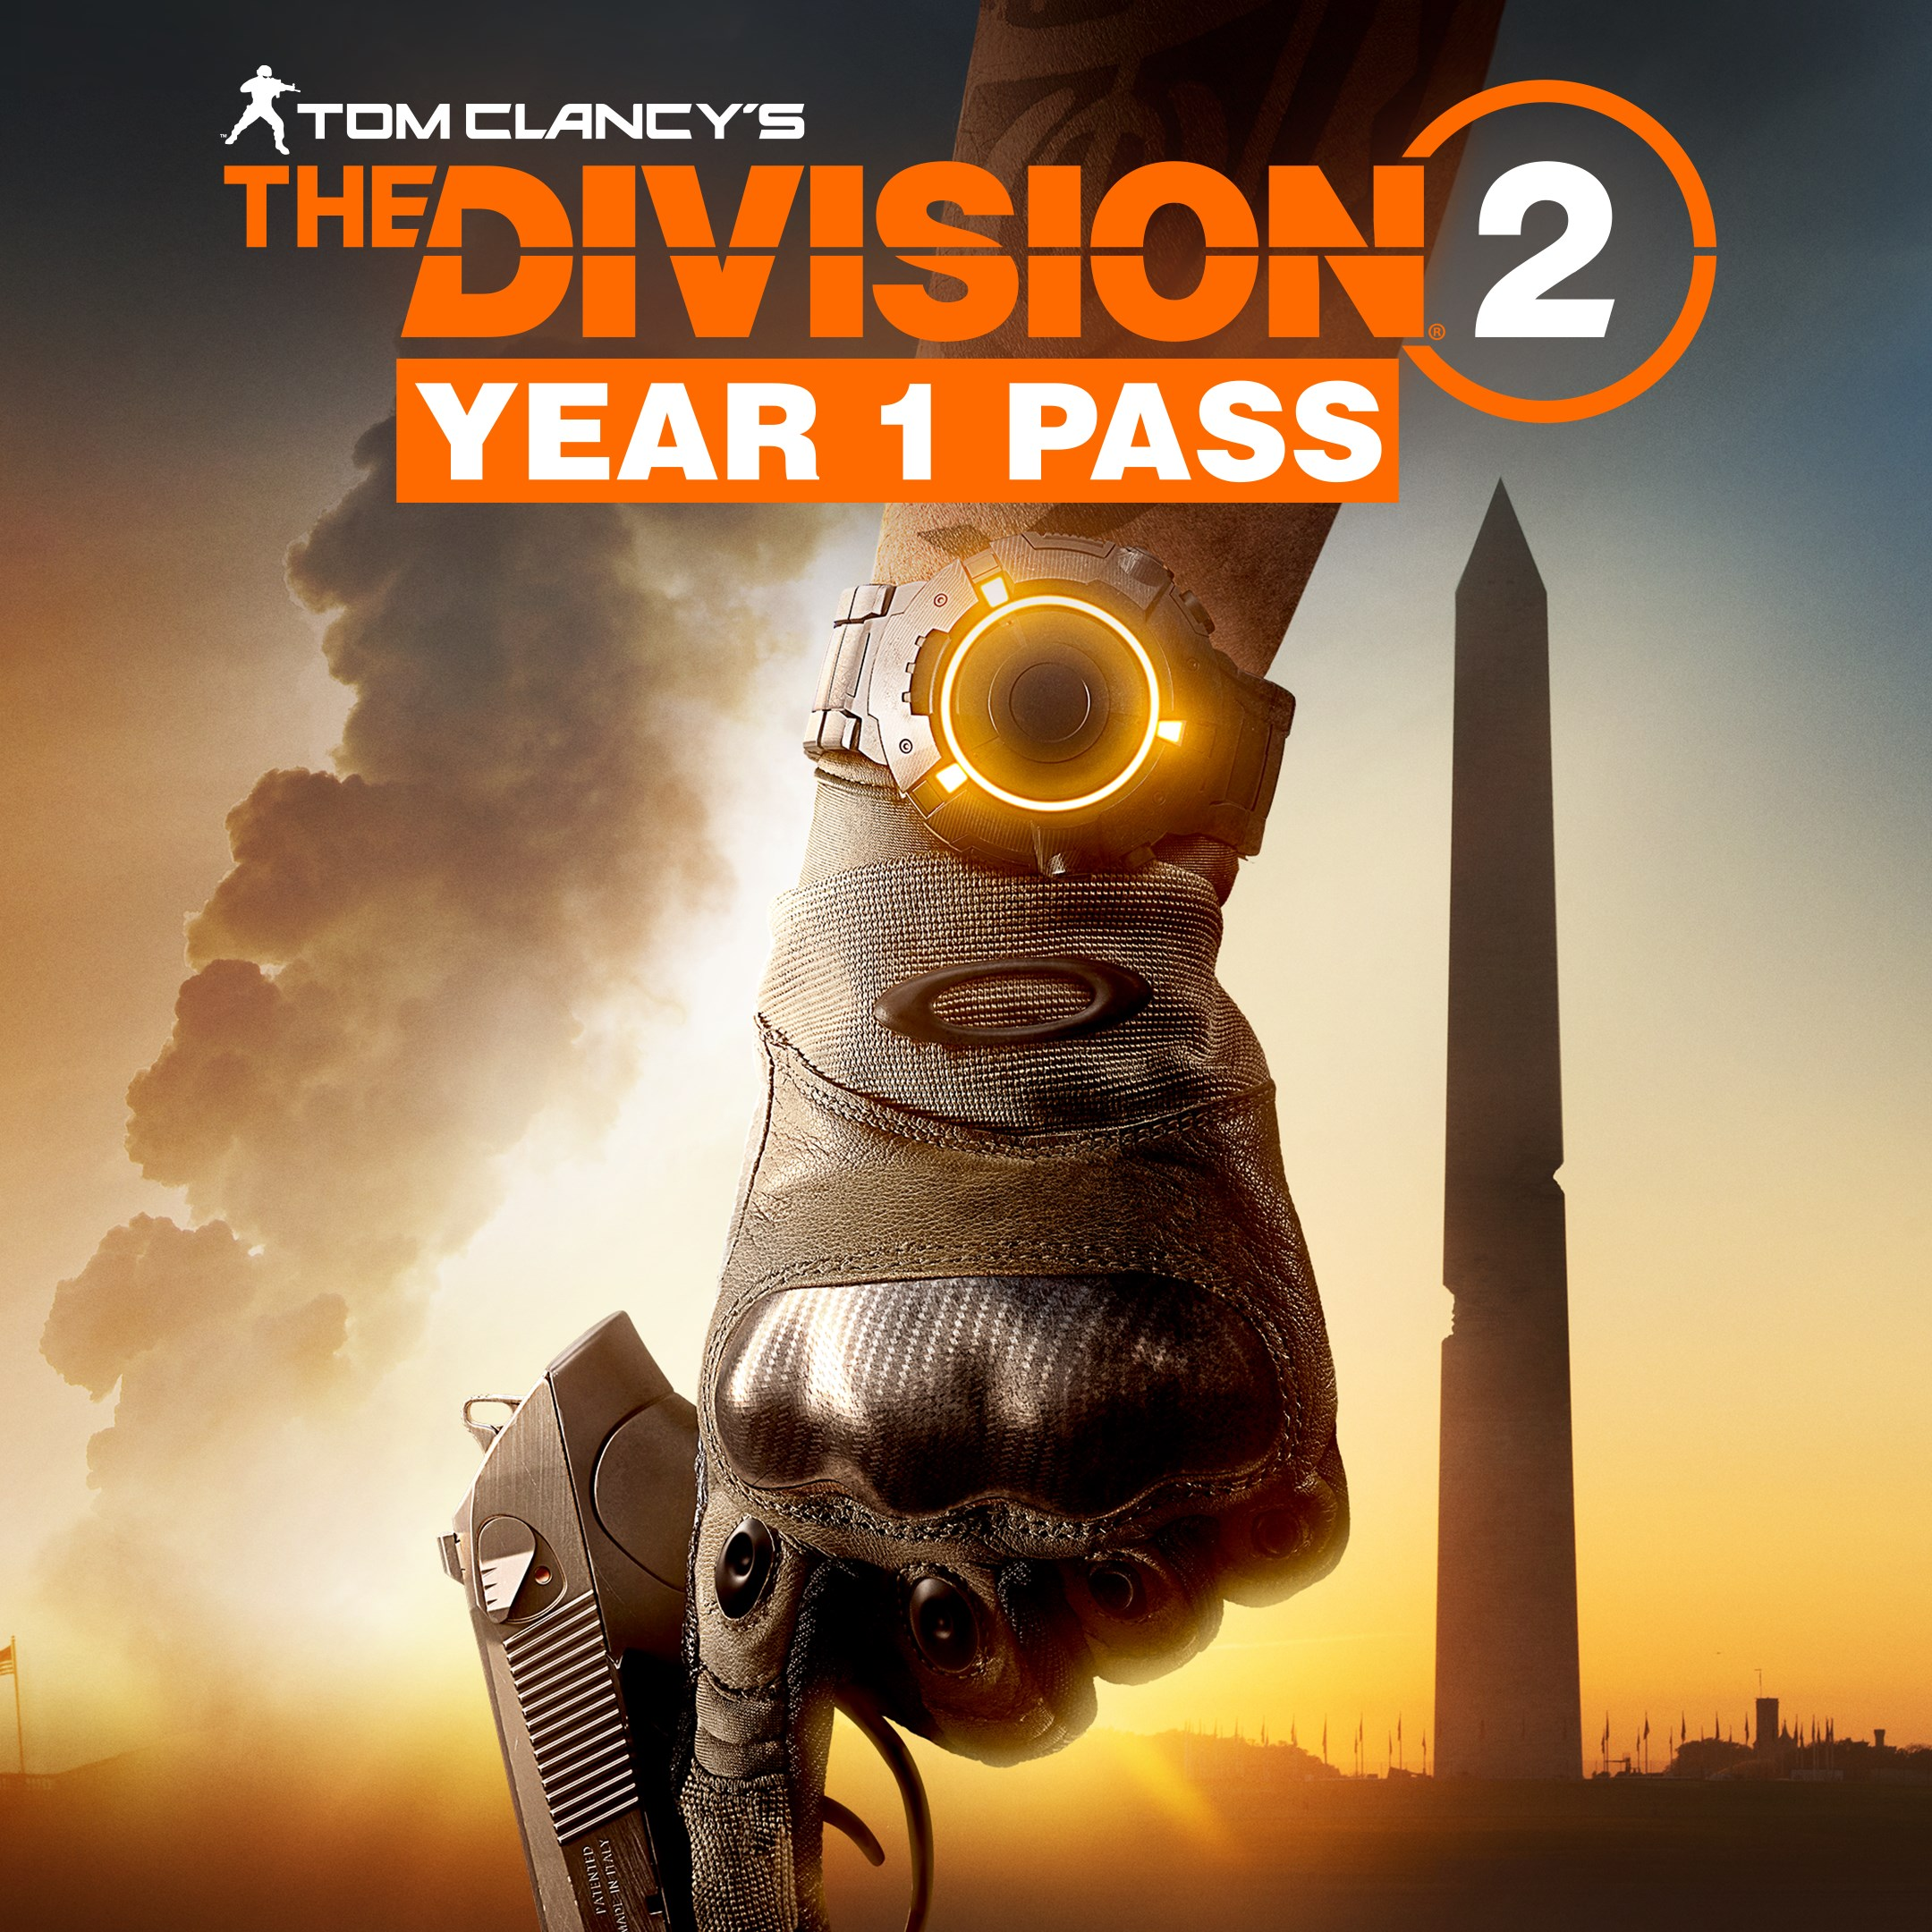 Tom Clancy's The Division 2 for Xbox One | Xbox